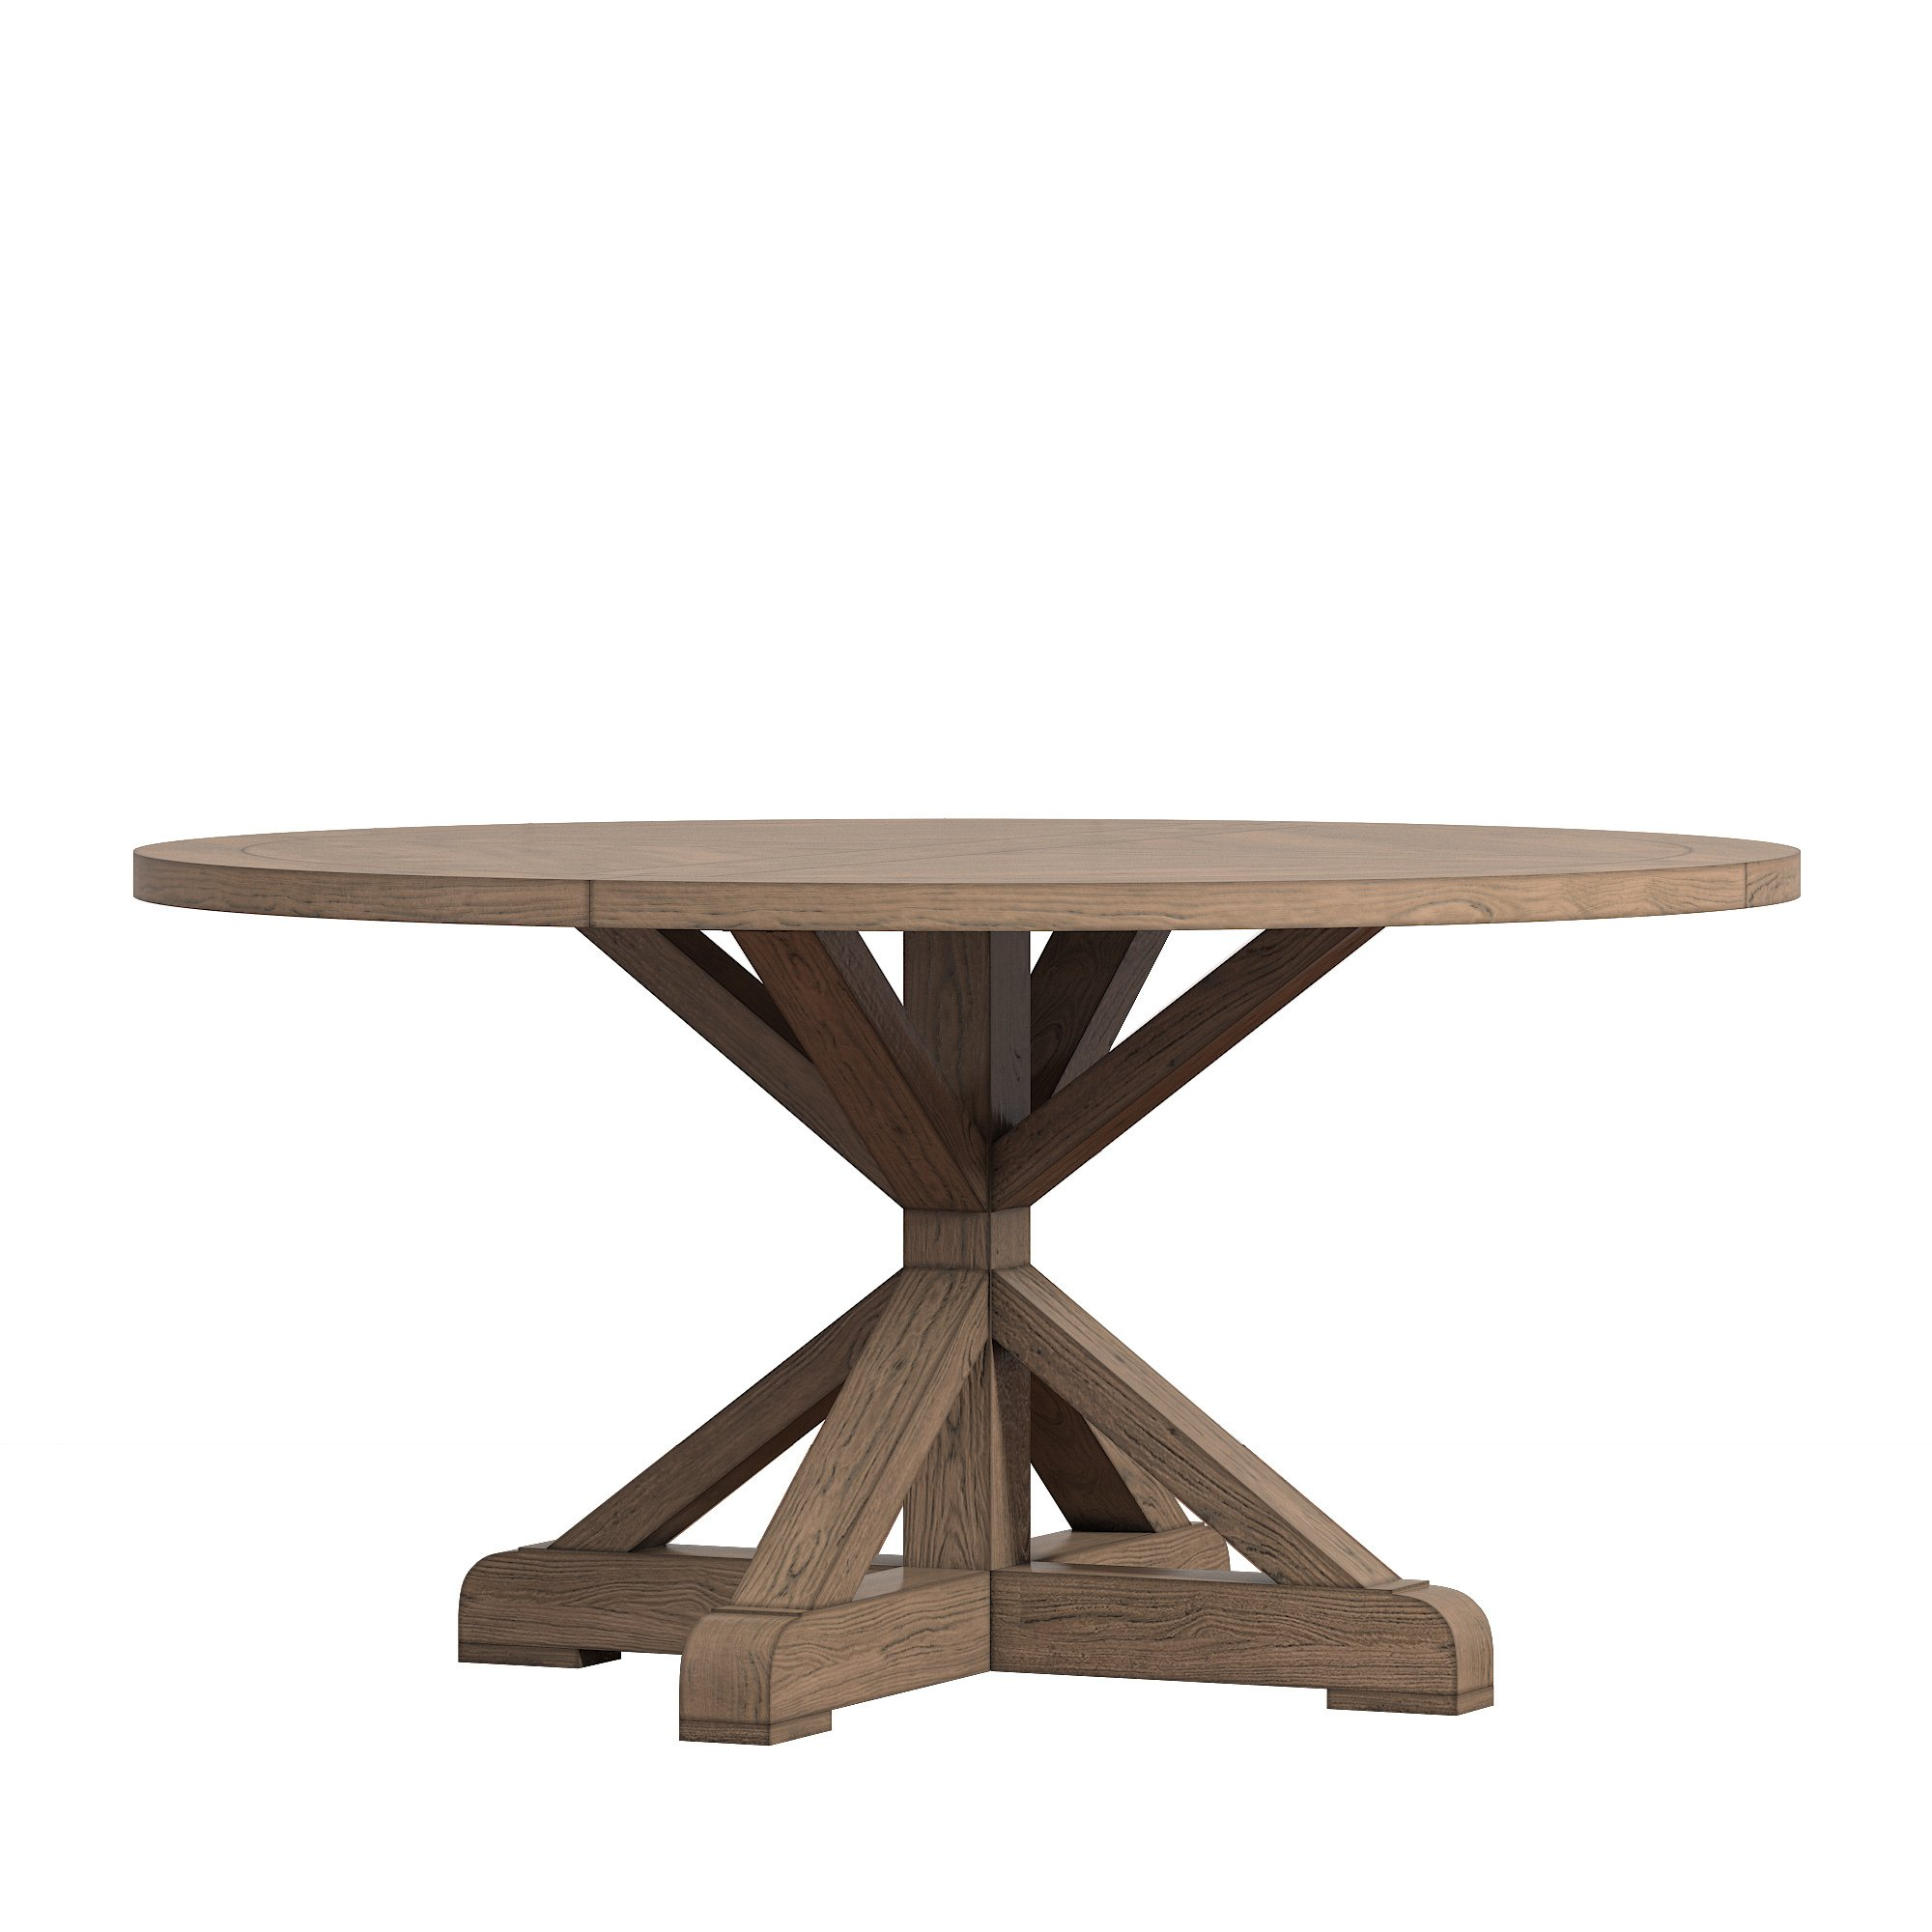 benchwright rustic base inch round dining table set inspire artisan pottery barn pedestal accent free shipping today best bedside stainless steel end mosaic bistro placemats art